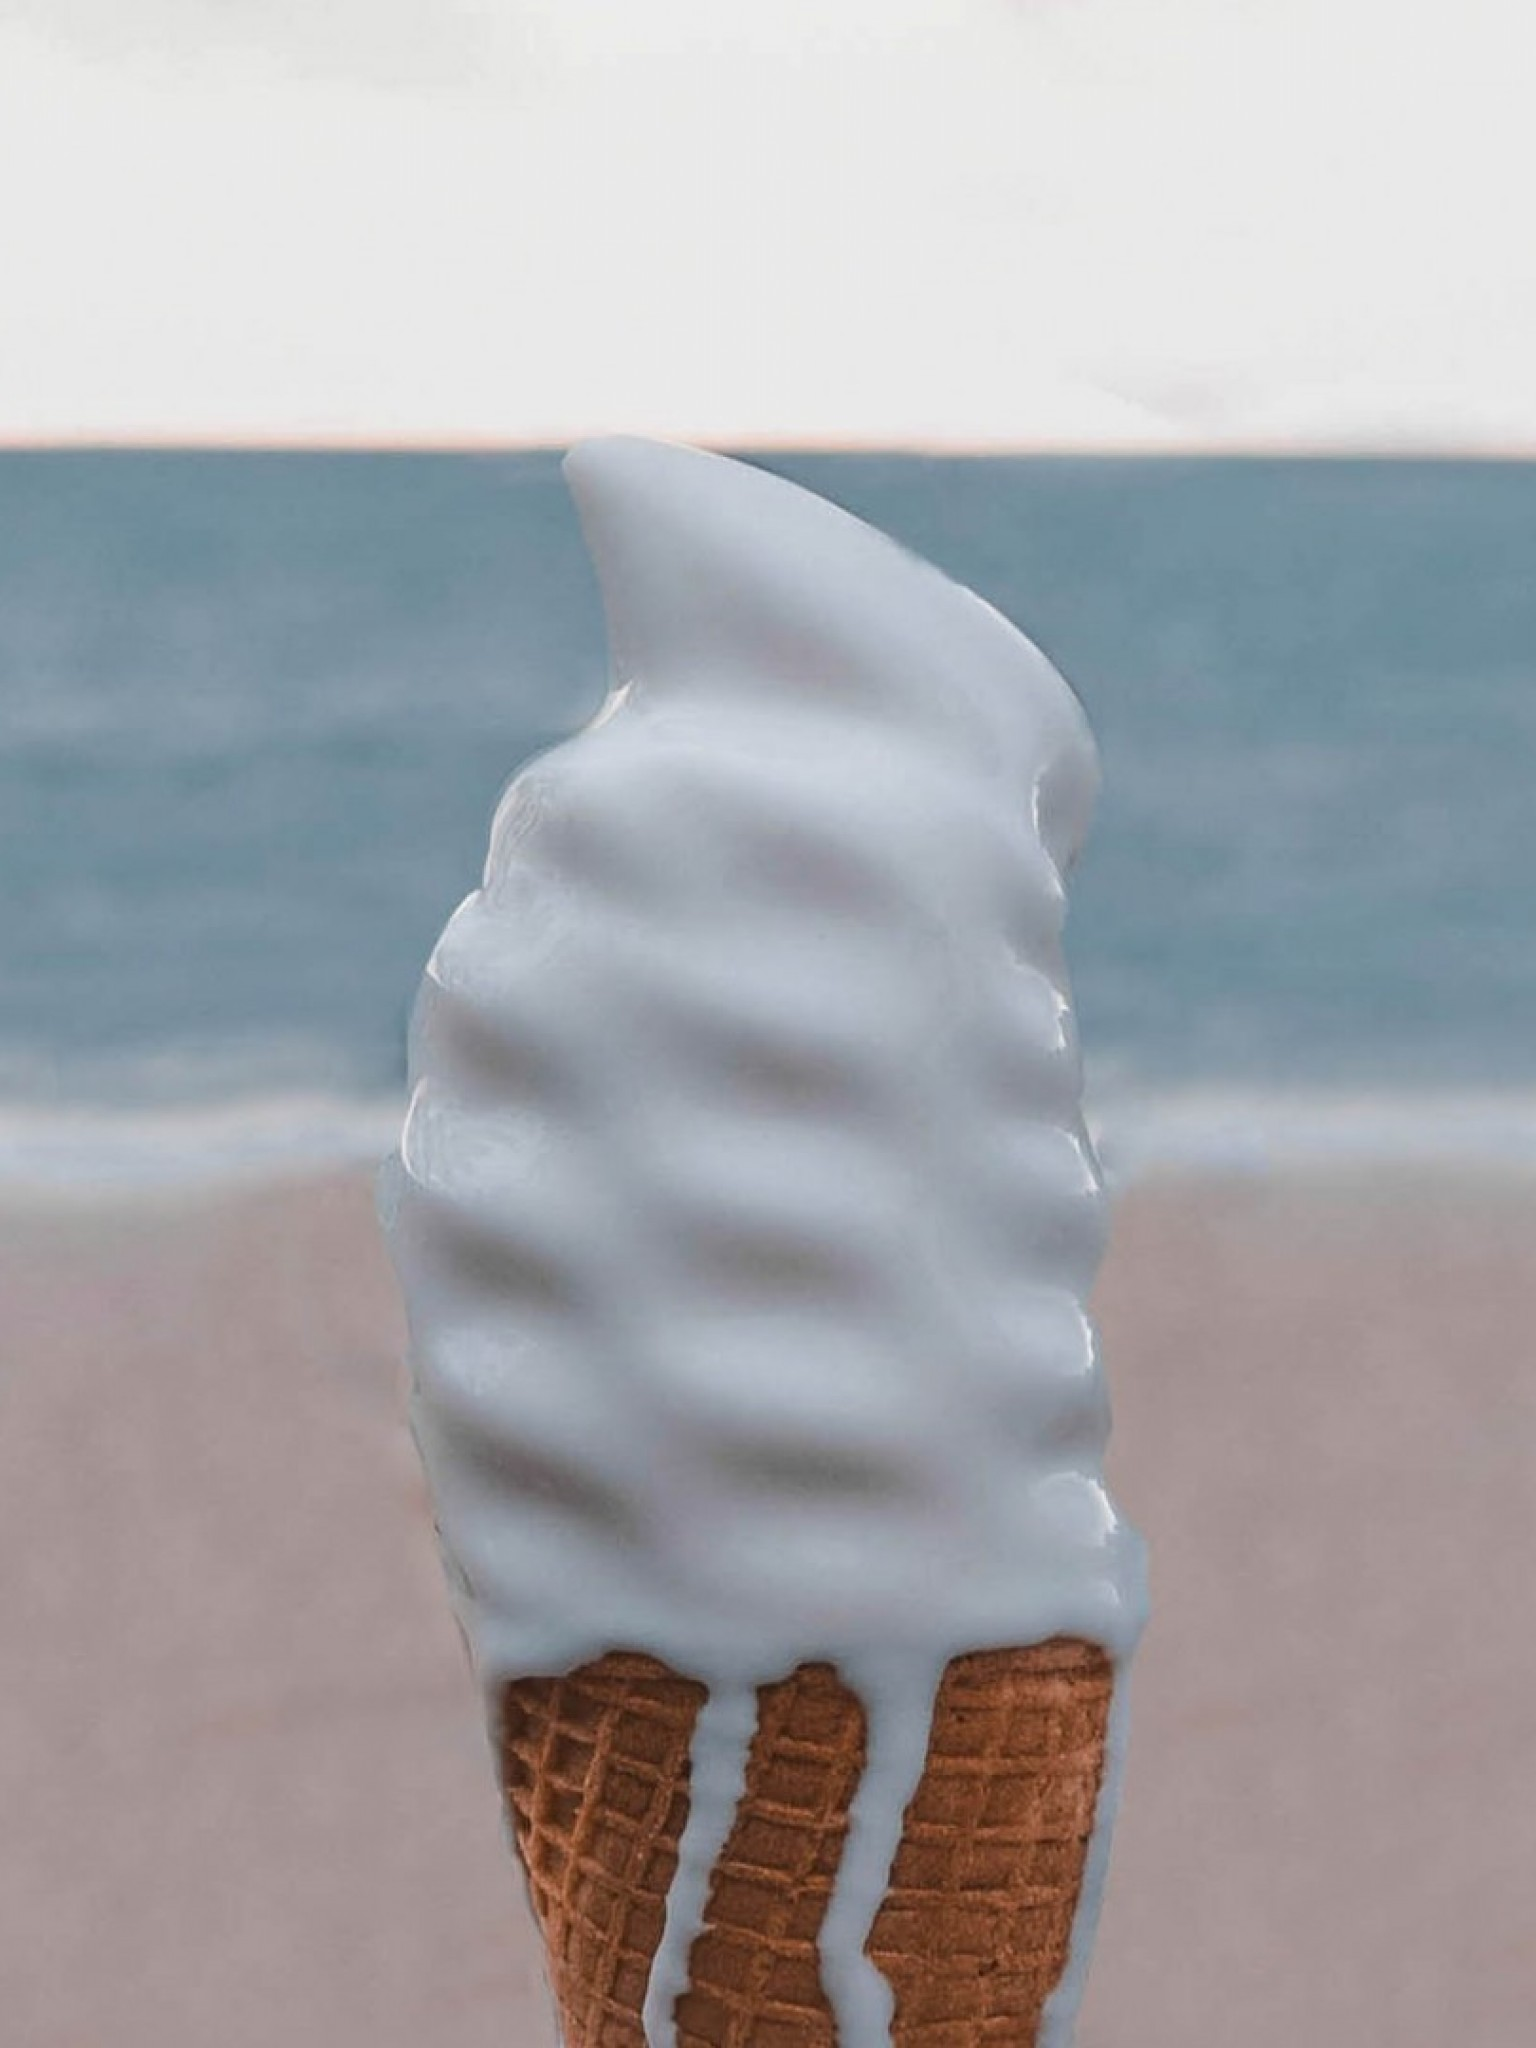 Melted ice cream HD Wallpaper